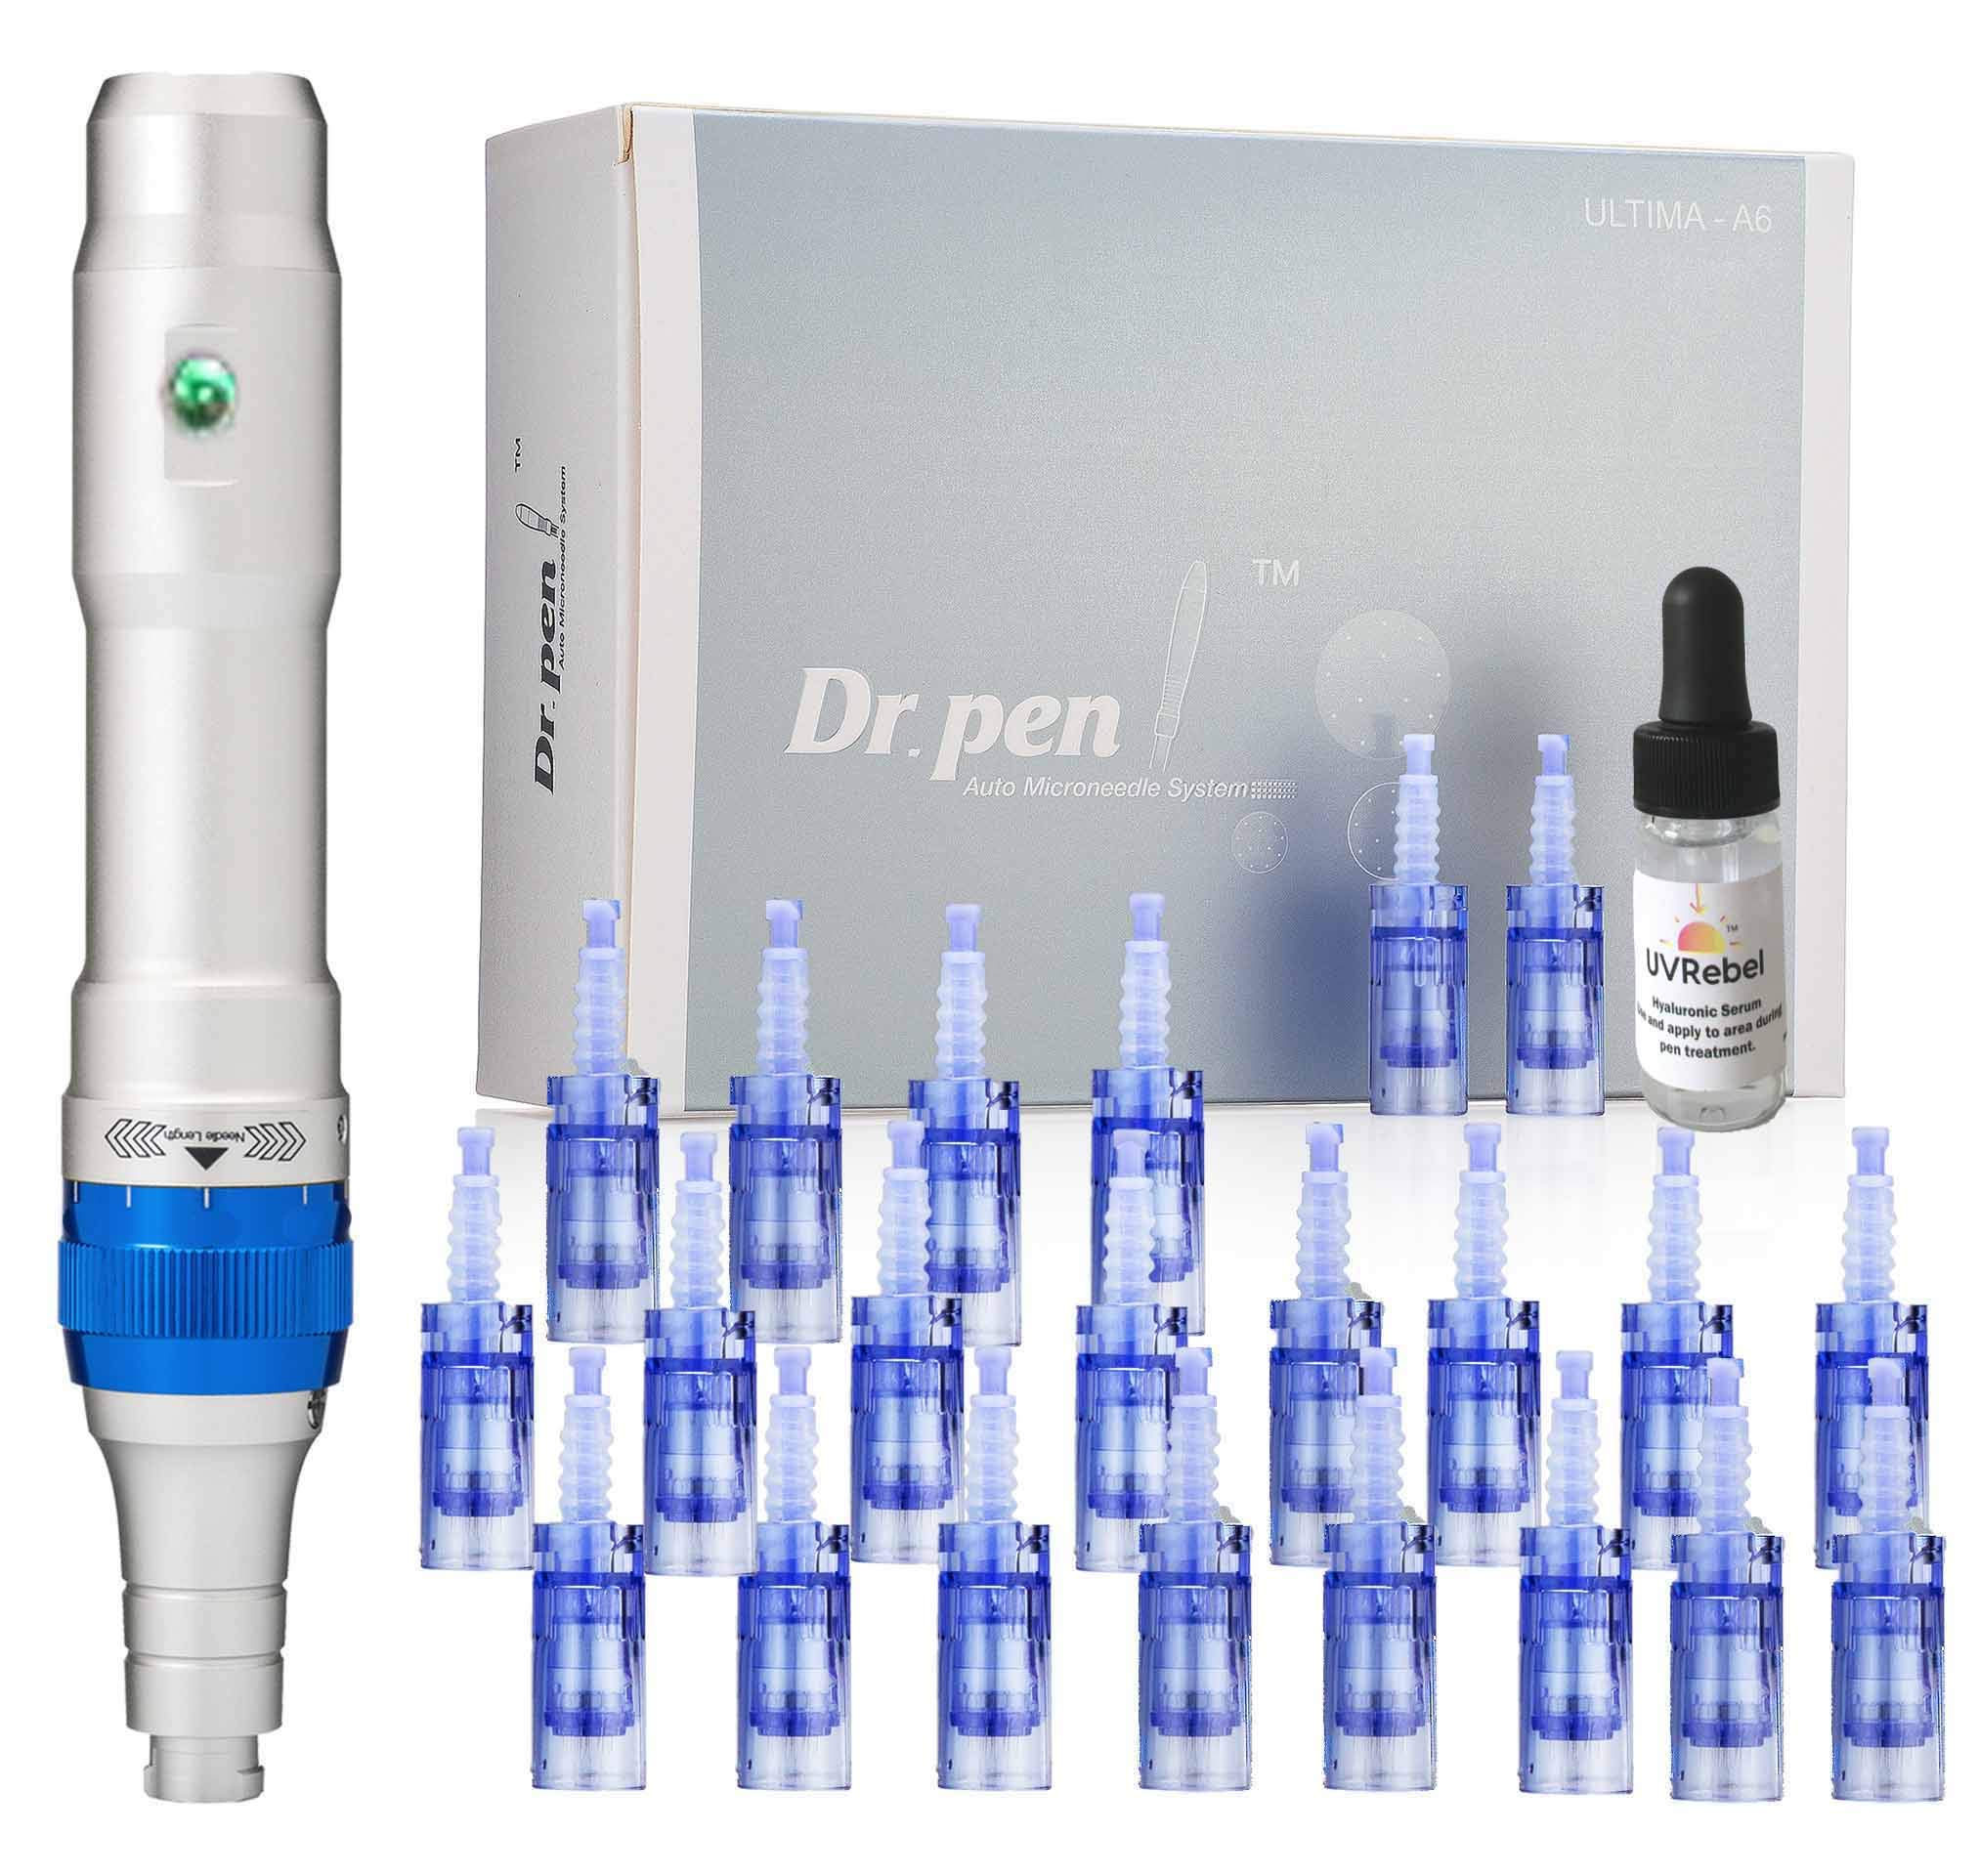 Dr. pen Ultima A6 Microneedling pen 24 Pcs Pin & Nano cartridges, 10 x 36-pin, 10 x Nano, 4 x 12-pin by Dr. Pen (Image #1)